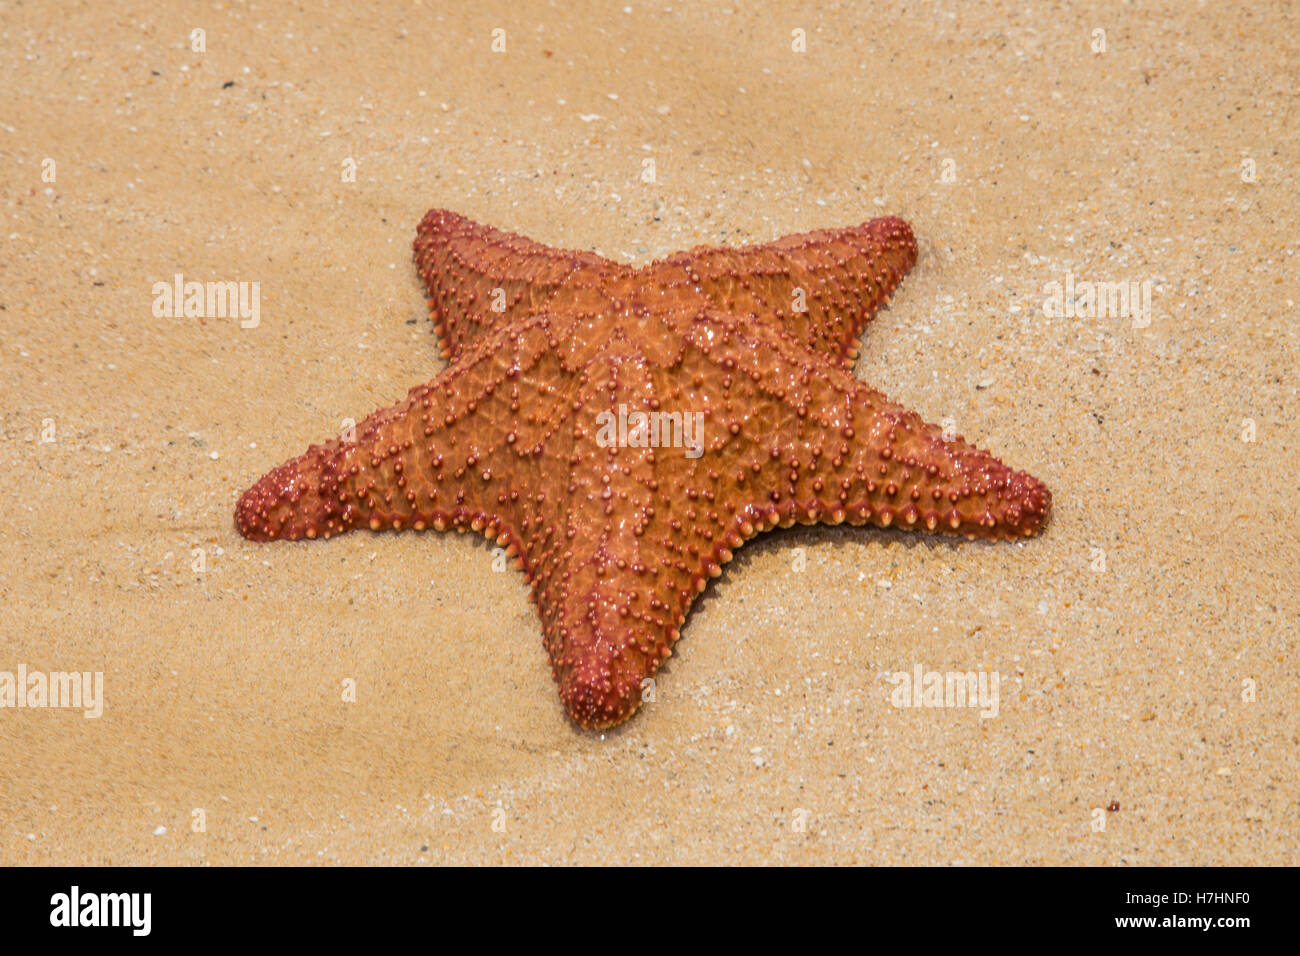 starfish on the sand background - Stock Image